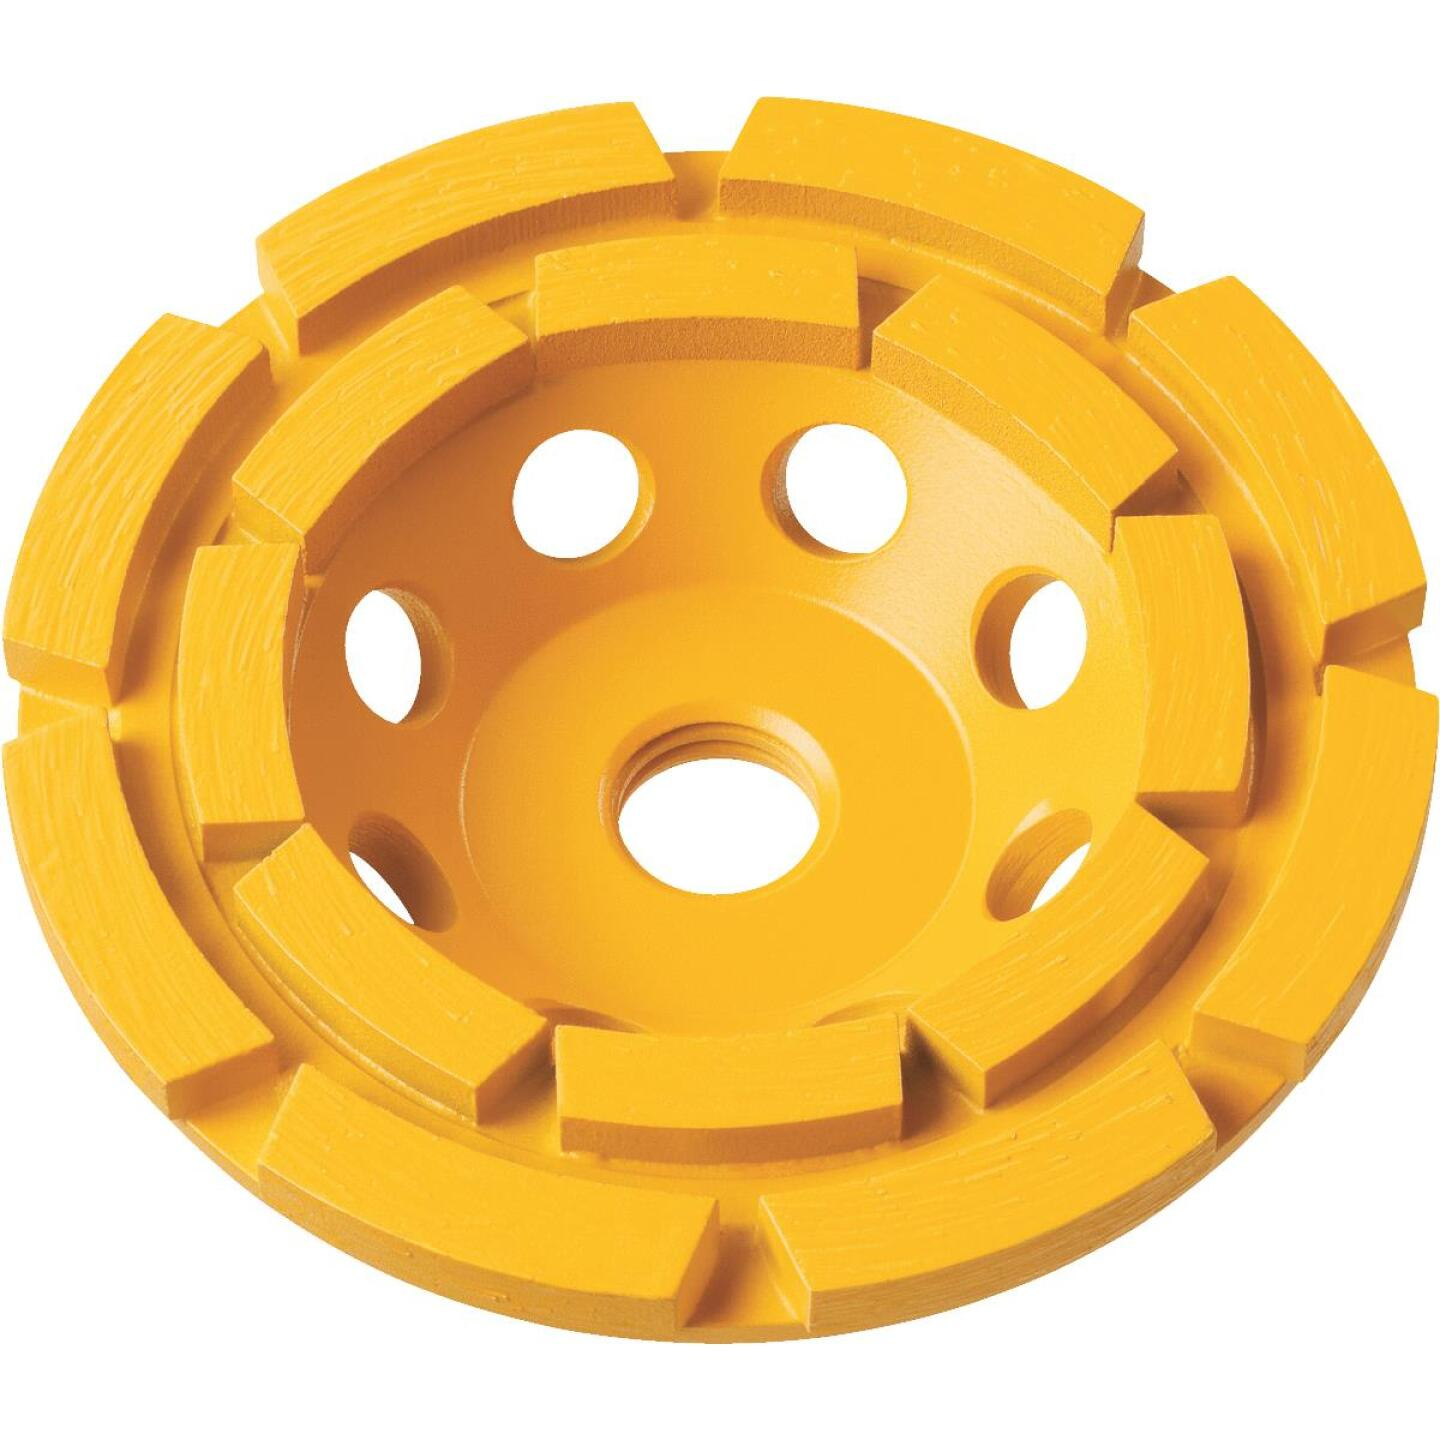 DeWalt 4 In. Double Row Diamond Cup Wheel Image 1